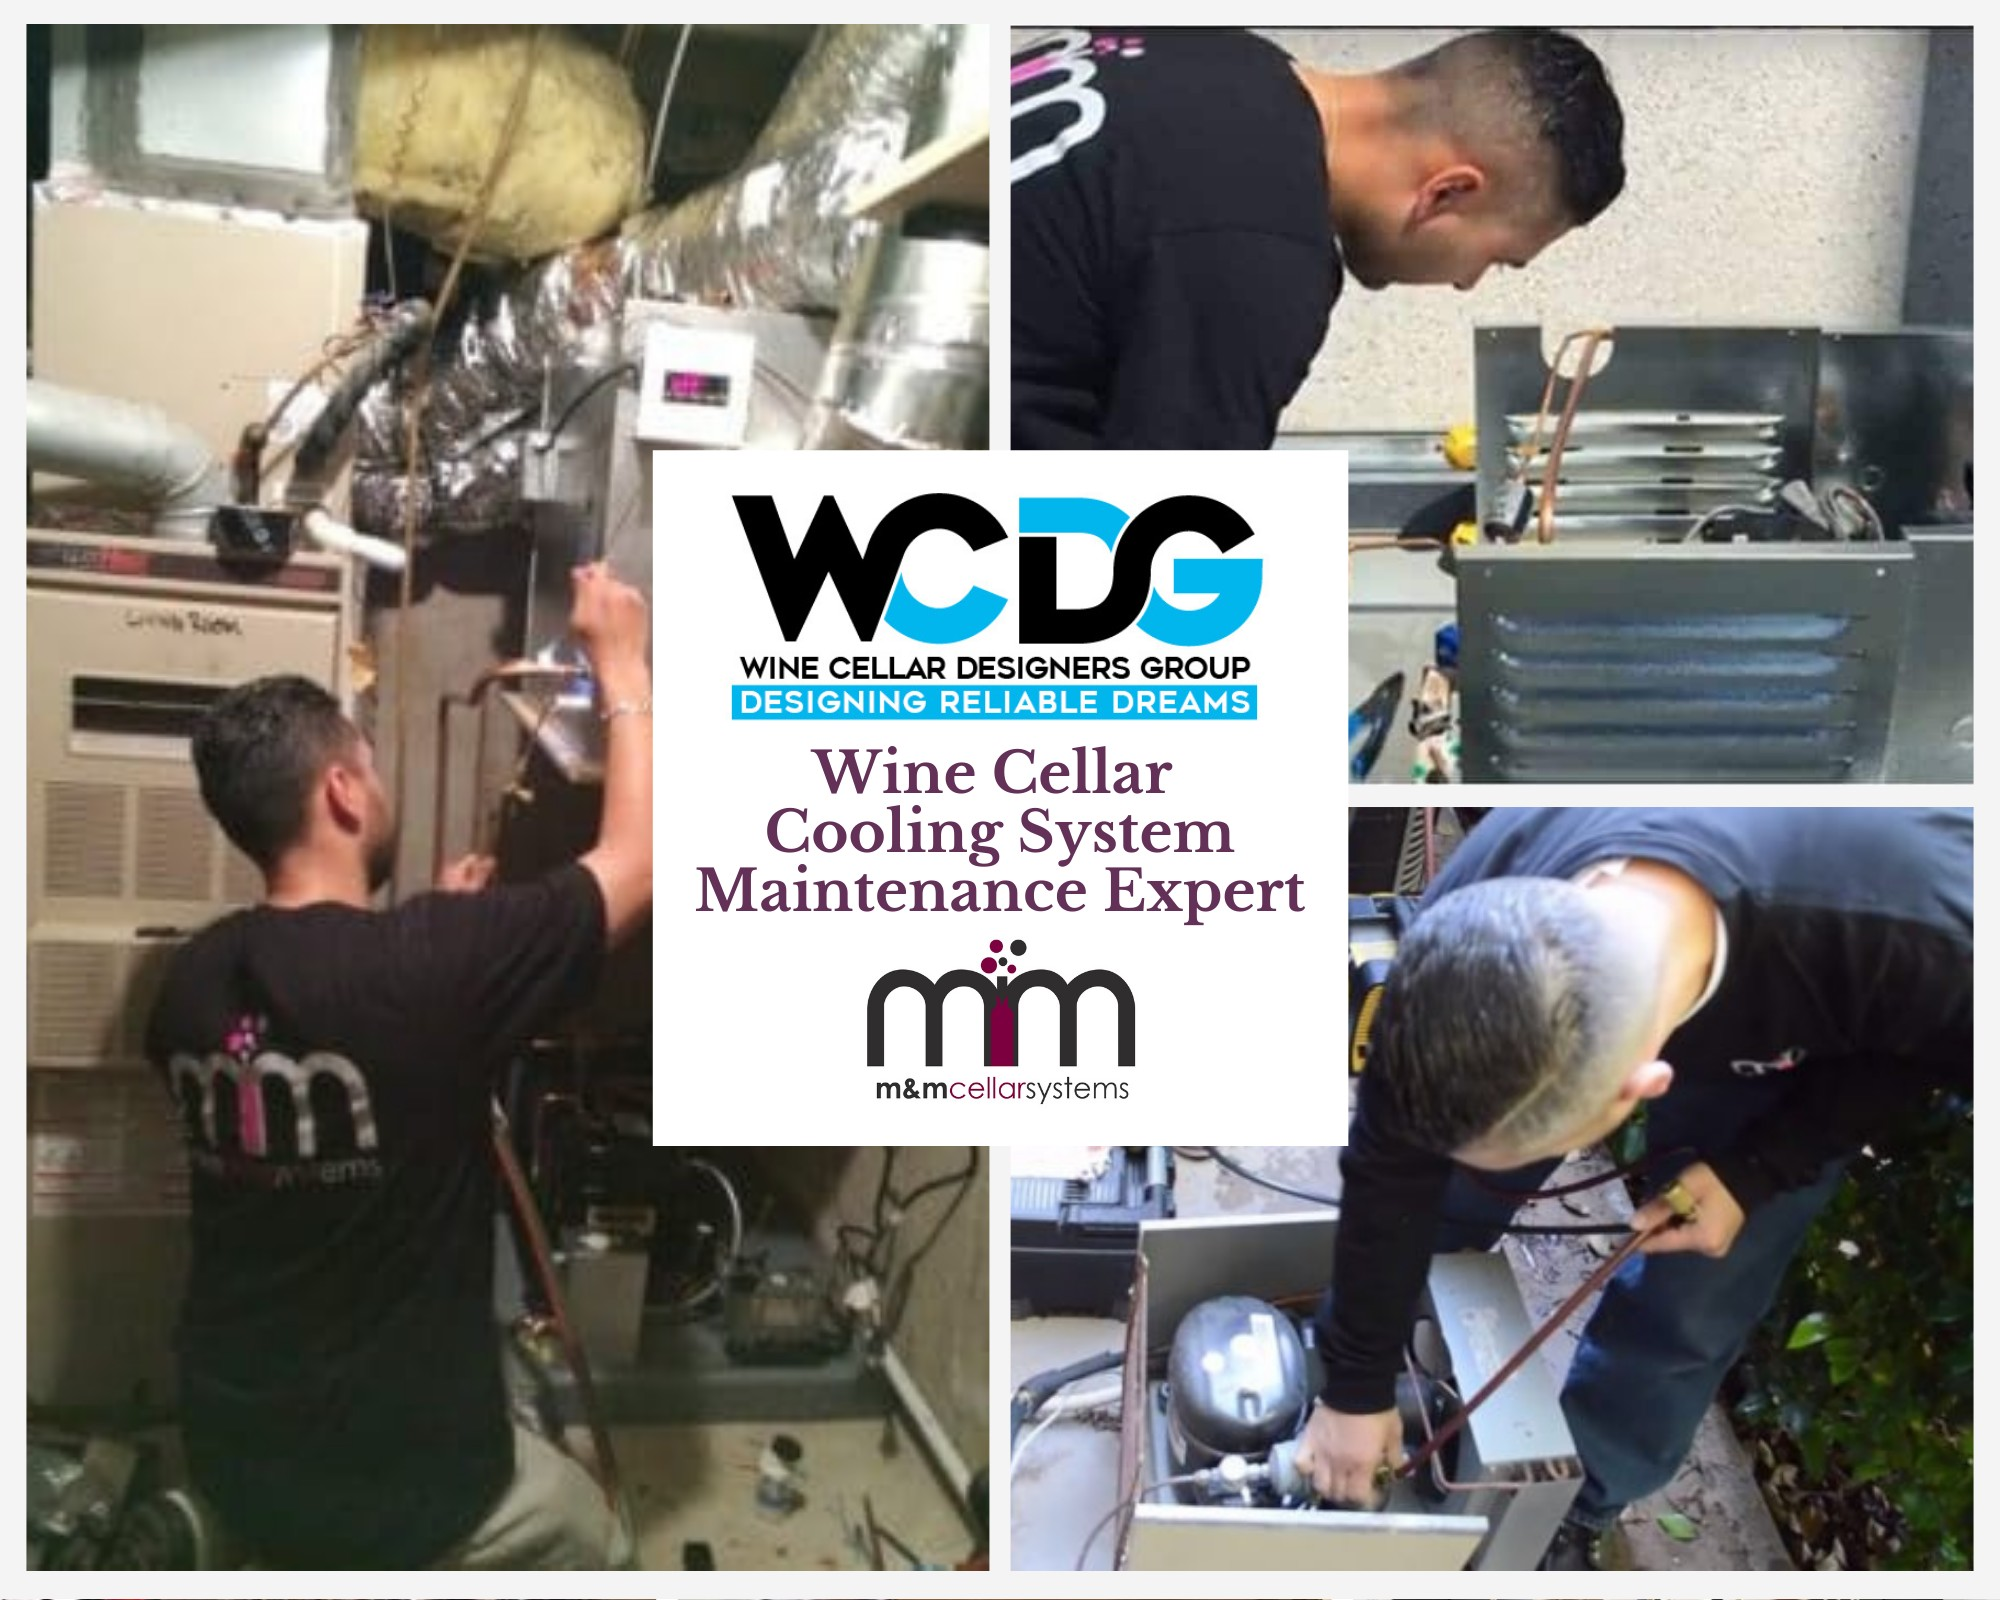 Wine Cellar Cooling Systems Maintenance Experts